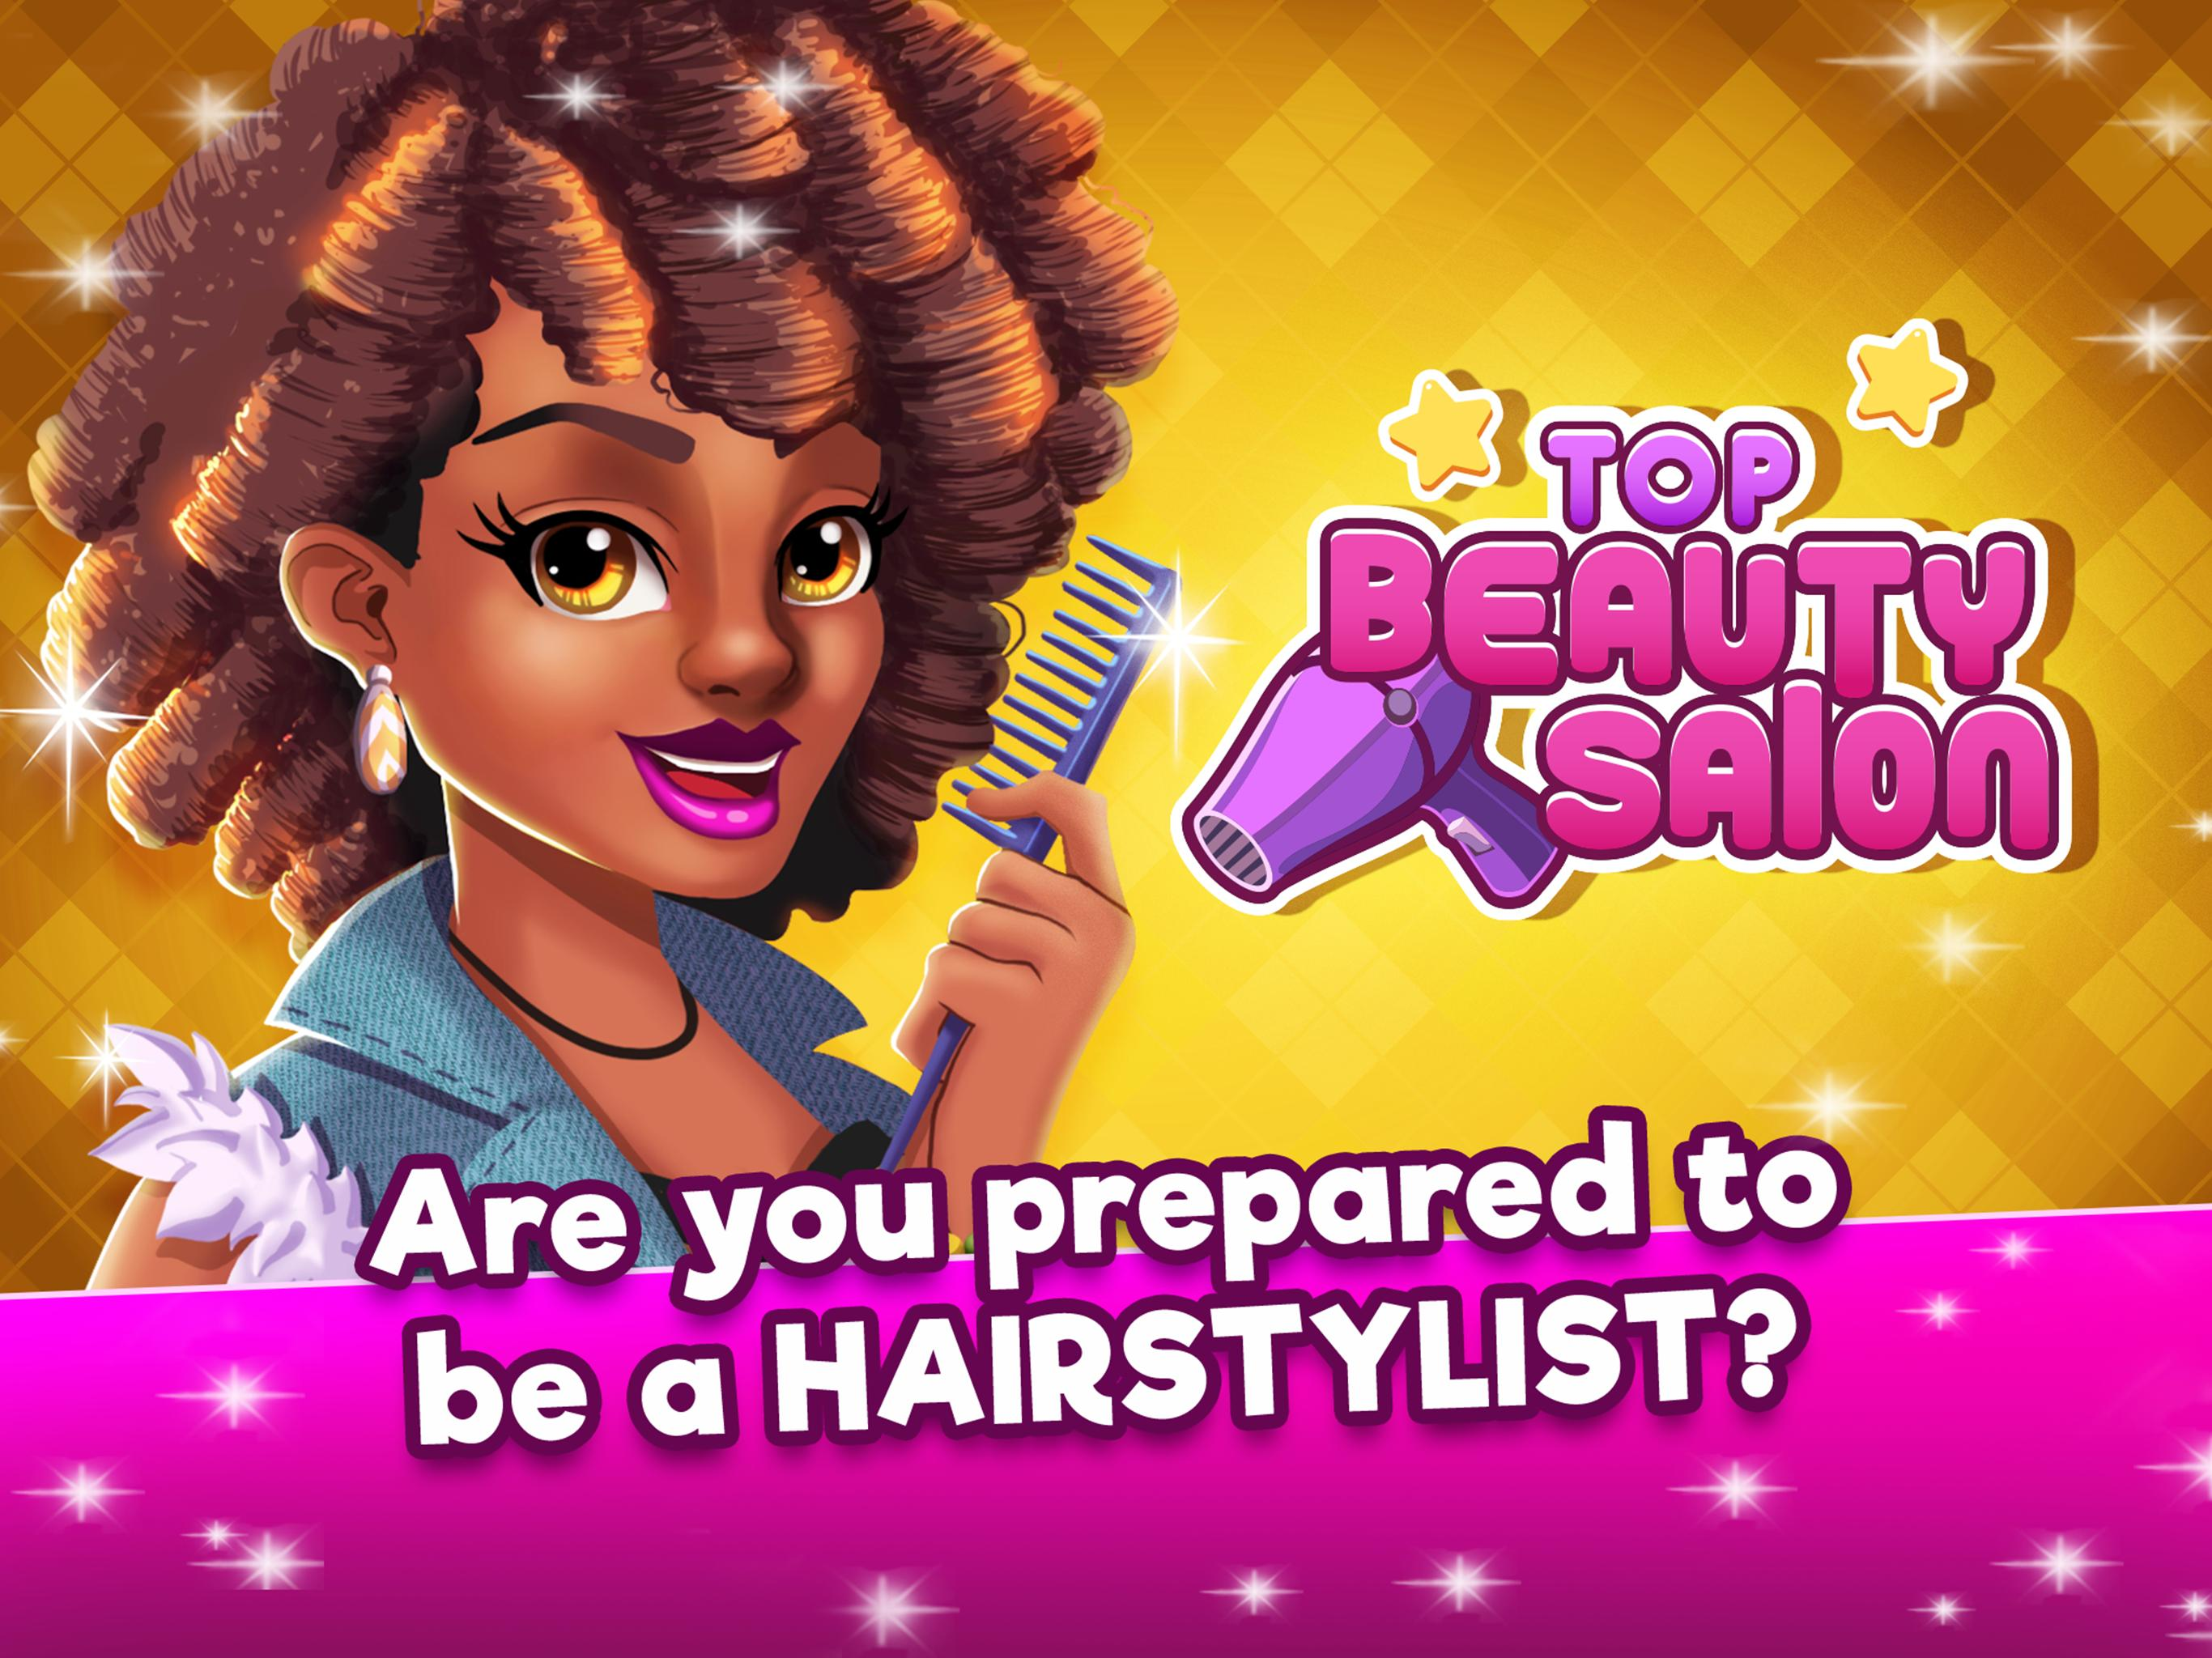 Top Beauty Salon - Hair and Makeup Parlor Game for Android